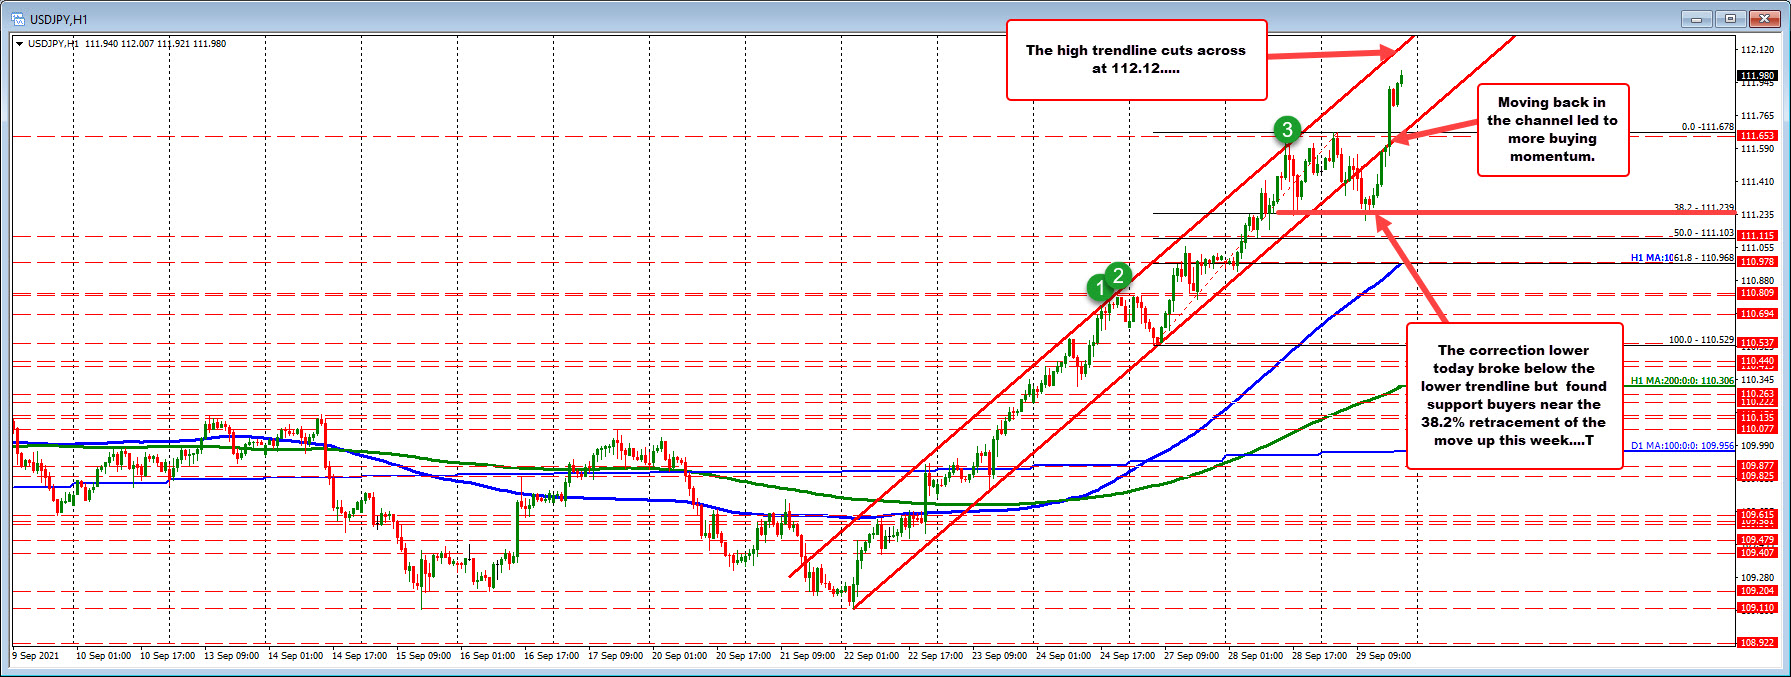 USDJPY extends to a new high